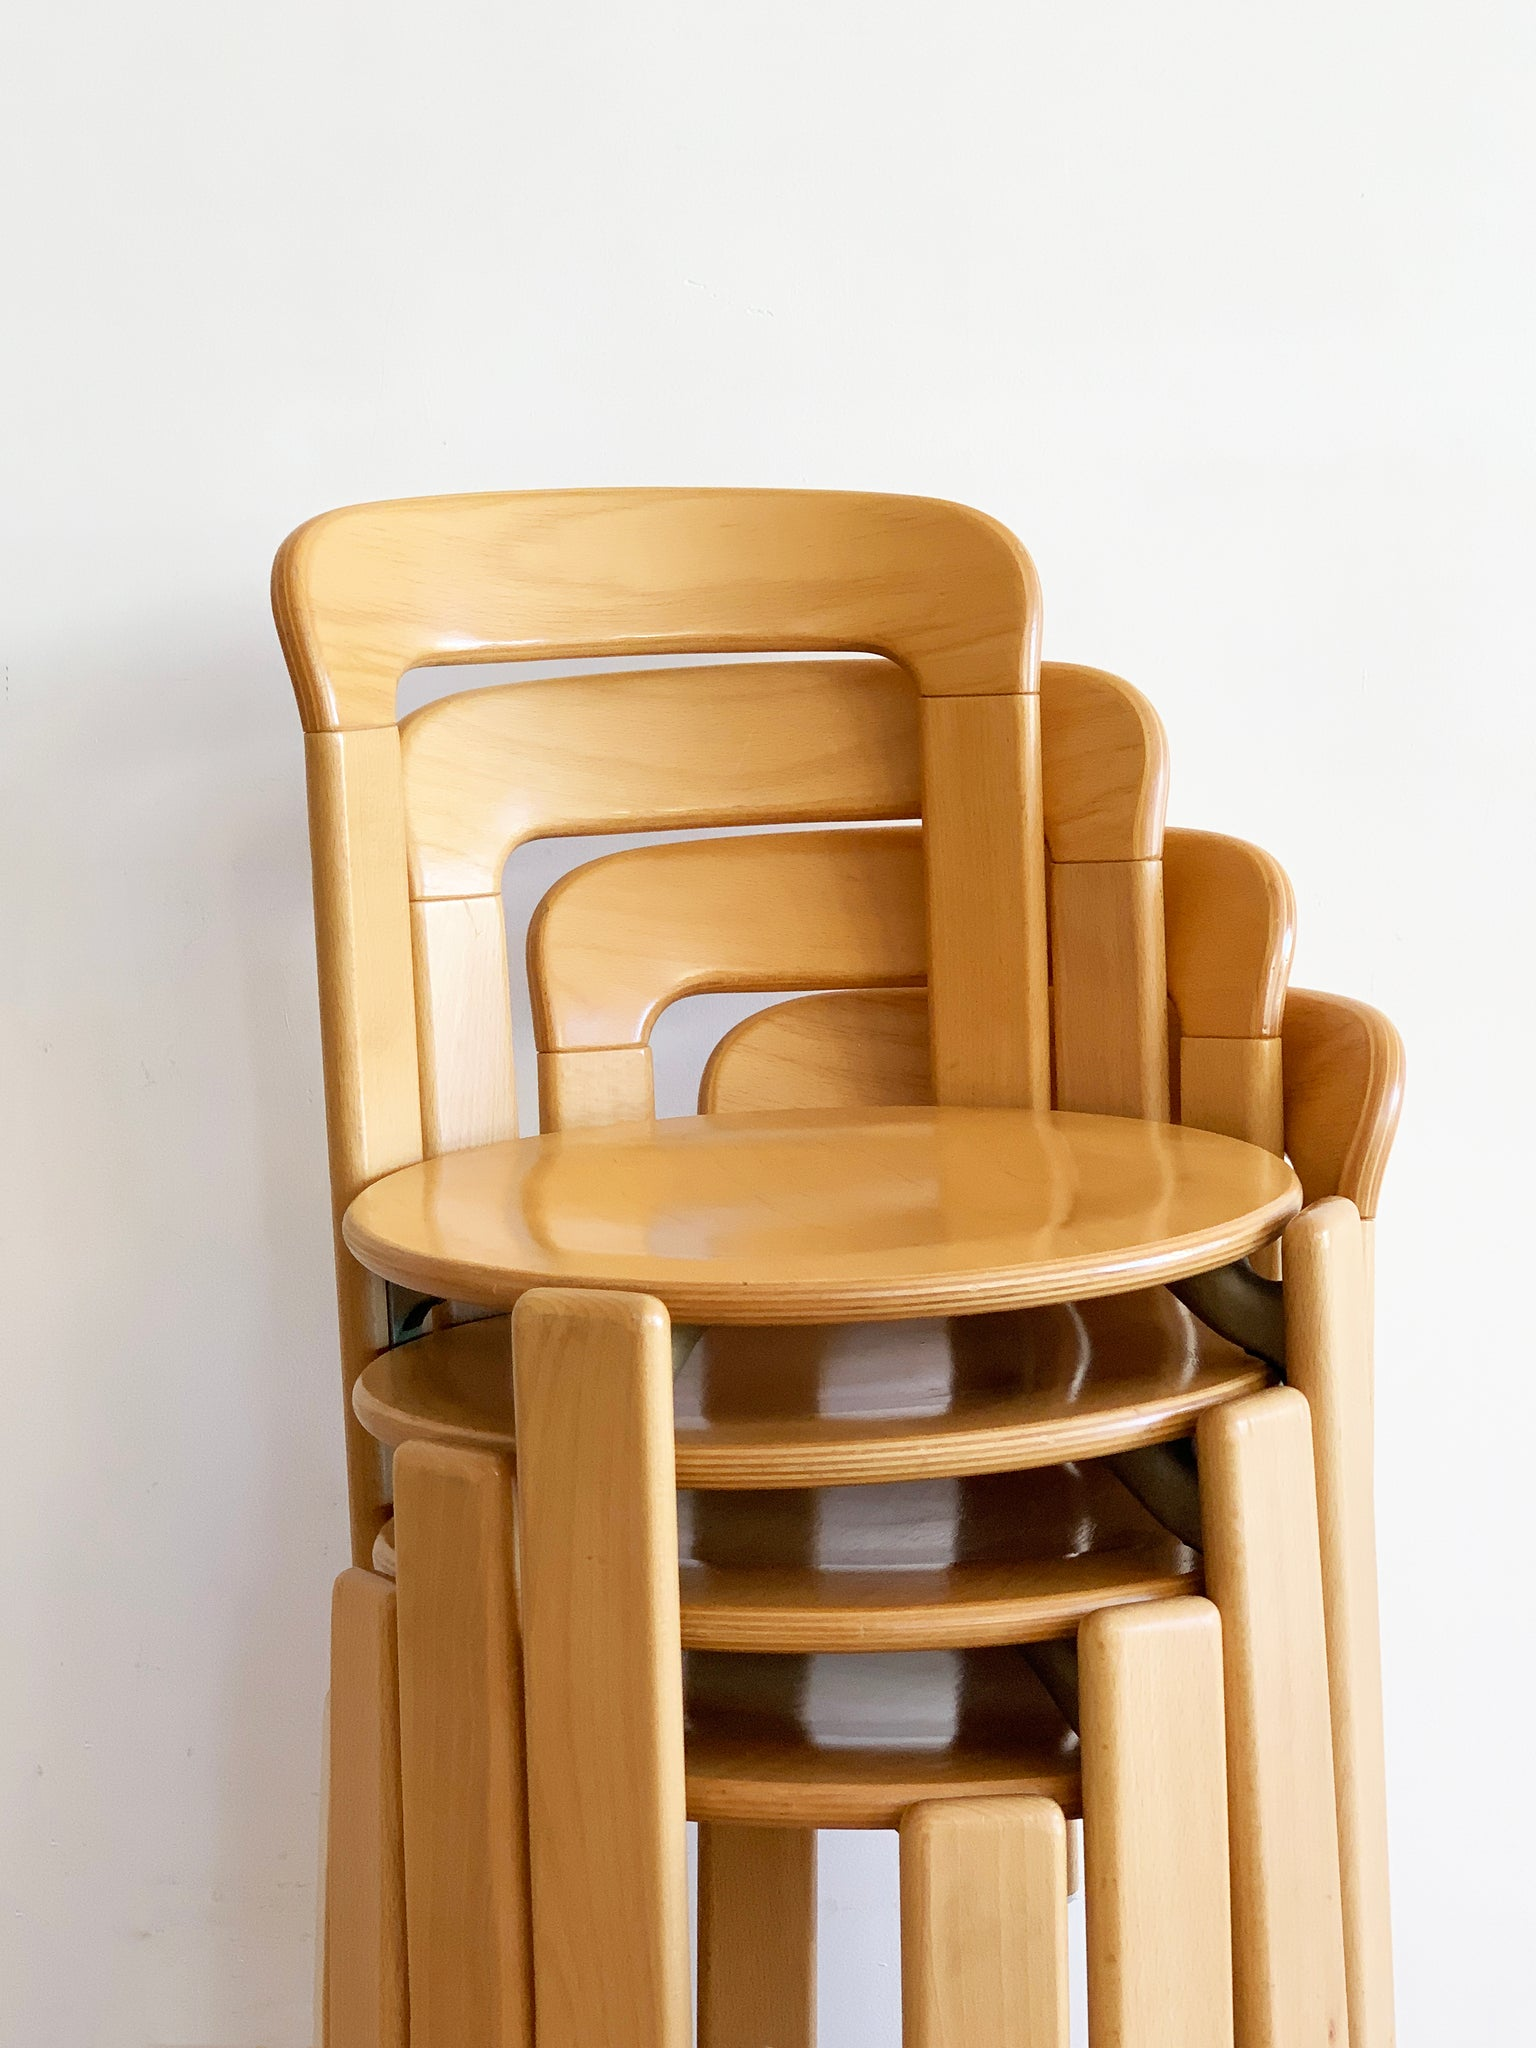 1970s Beech Rey Stacking Chairs Designed by Bruno Rey - Set of 4